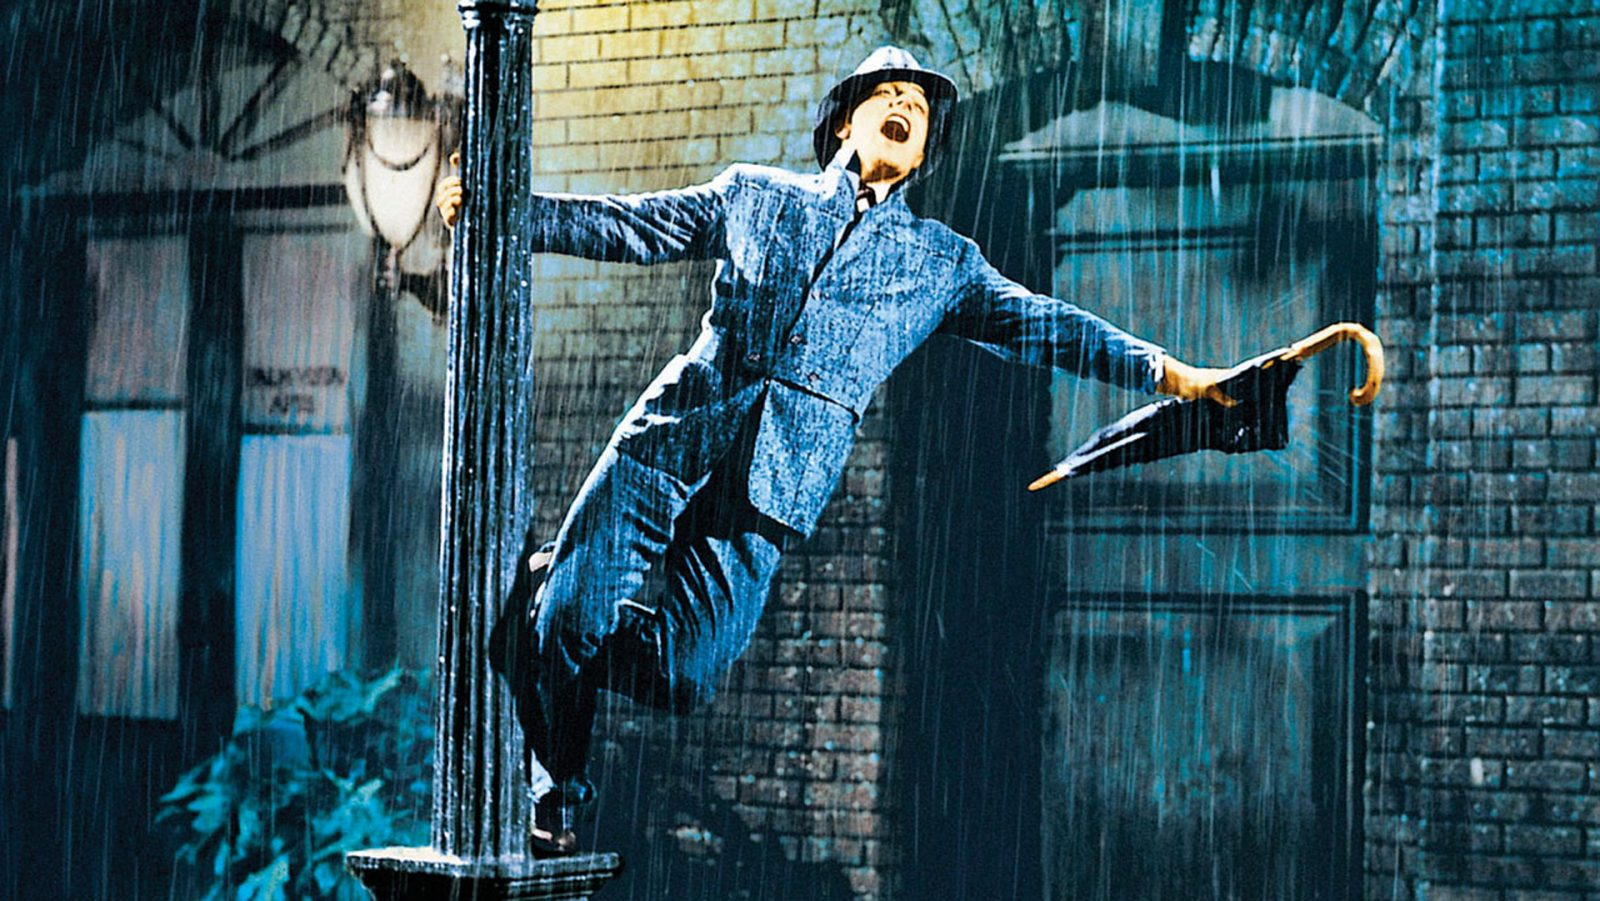 Gene Kelly does his famous dance in 'Singin' in the Rain,' which will be screened at the Riviera Theatre.